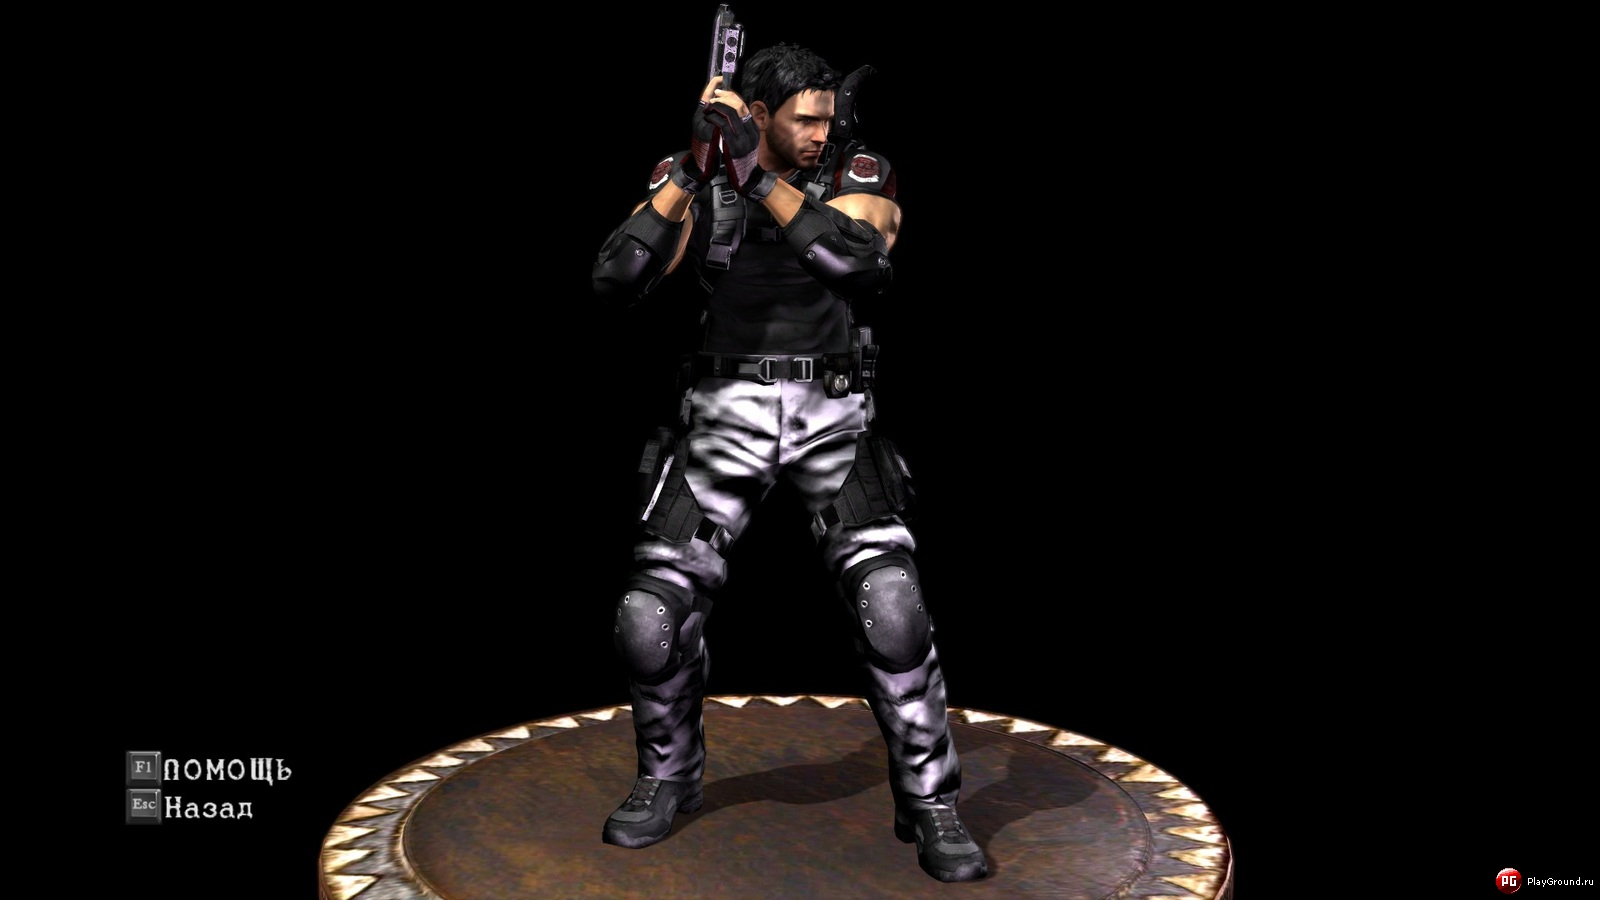 New Chris REDfield 0_107948_f056b646_orig